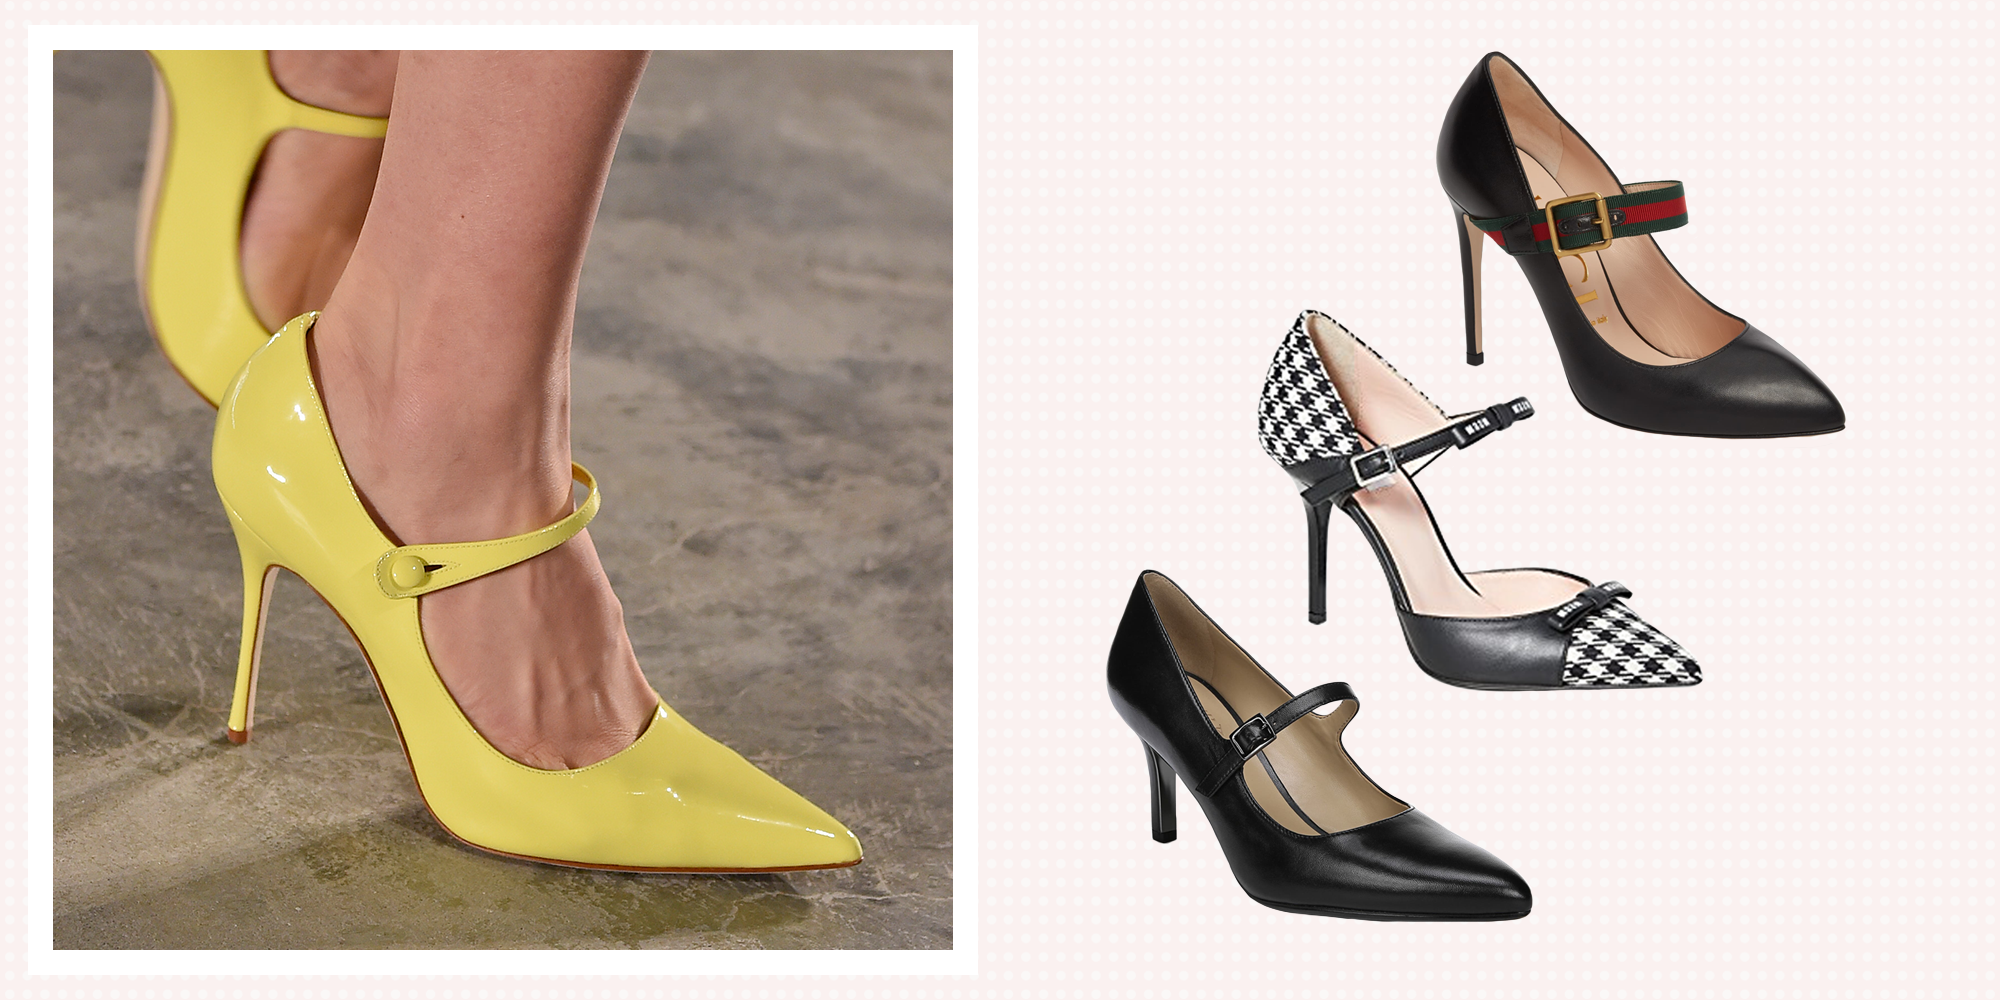 The 2020 Shoe Trends to Know for Next Season